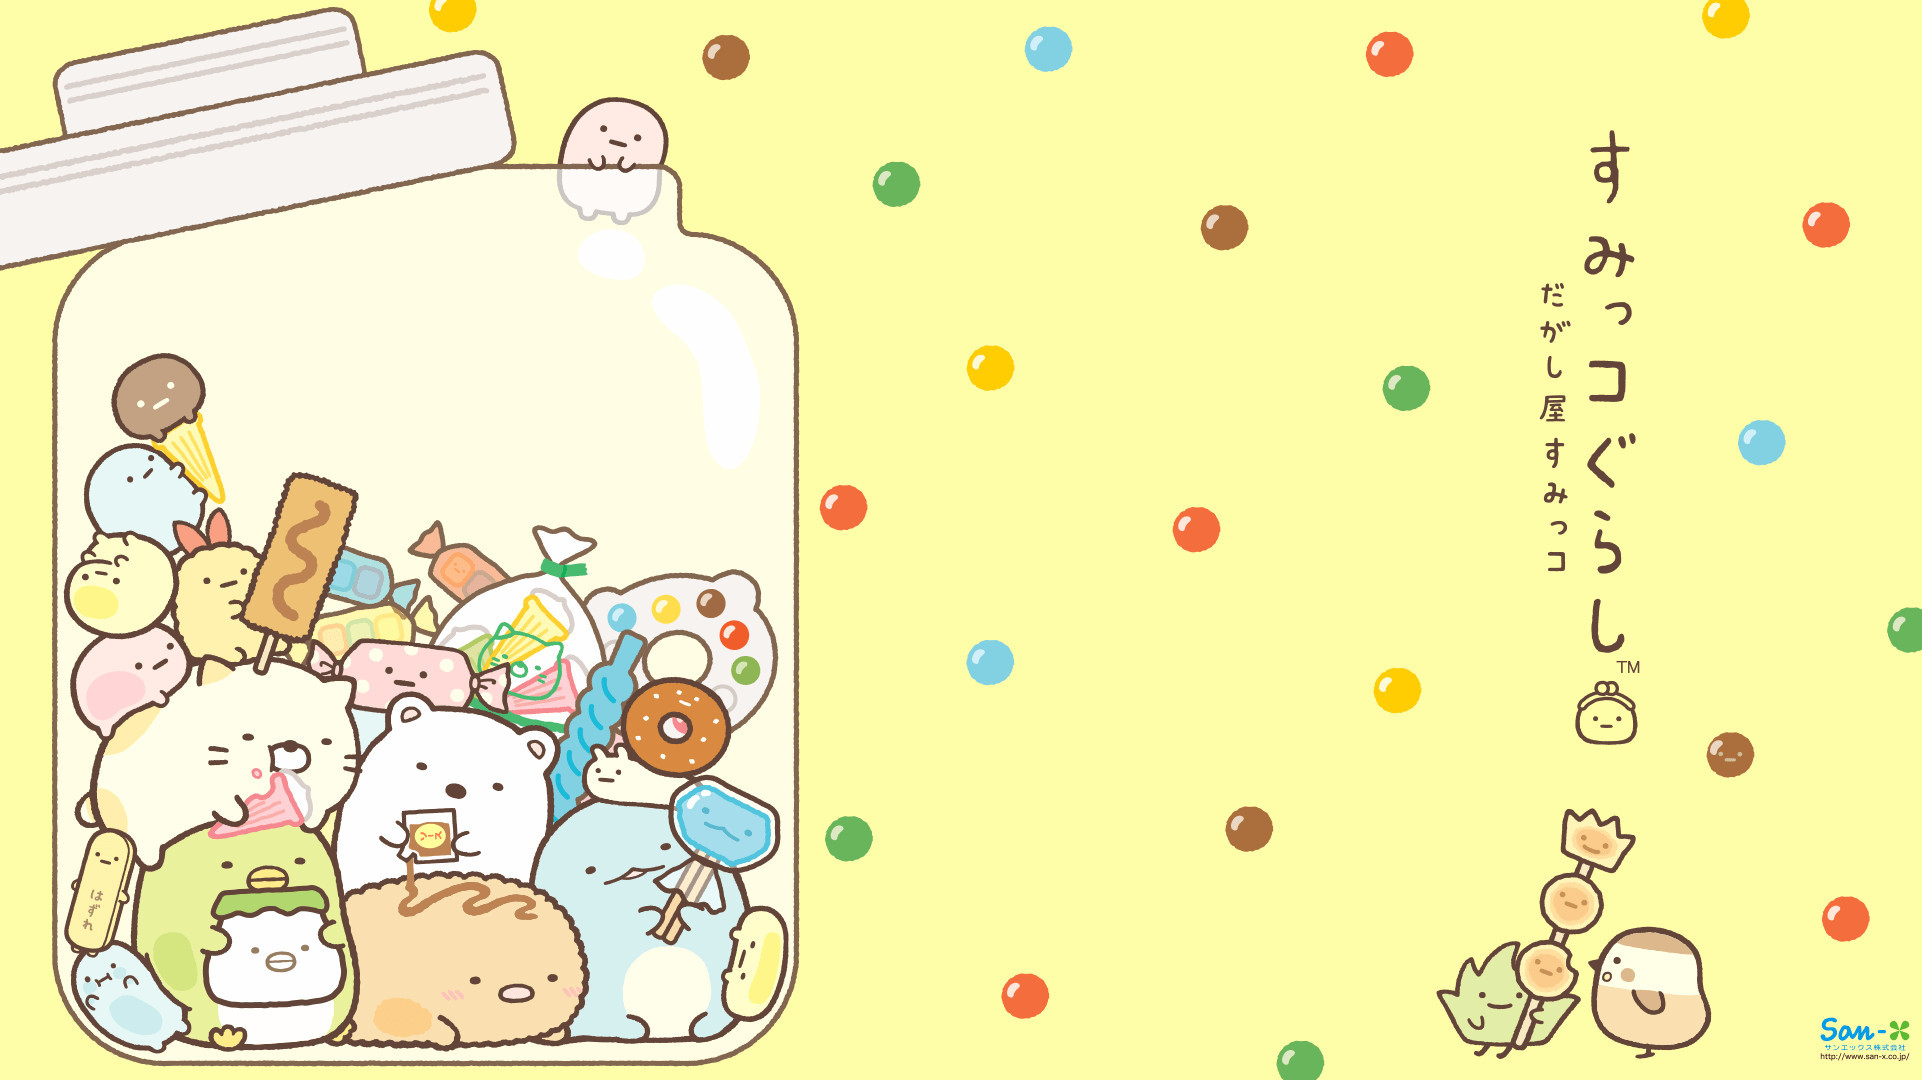 Res: 1922x1080, iPhone 5 Wallpaper Rilakkuma Cute · Kawaii Of iPhone 5 Wallpaper Rilakkuma  Cute · Kawaii